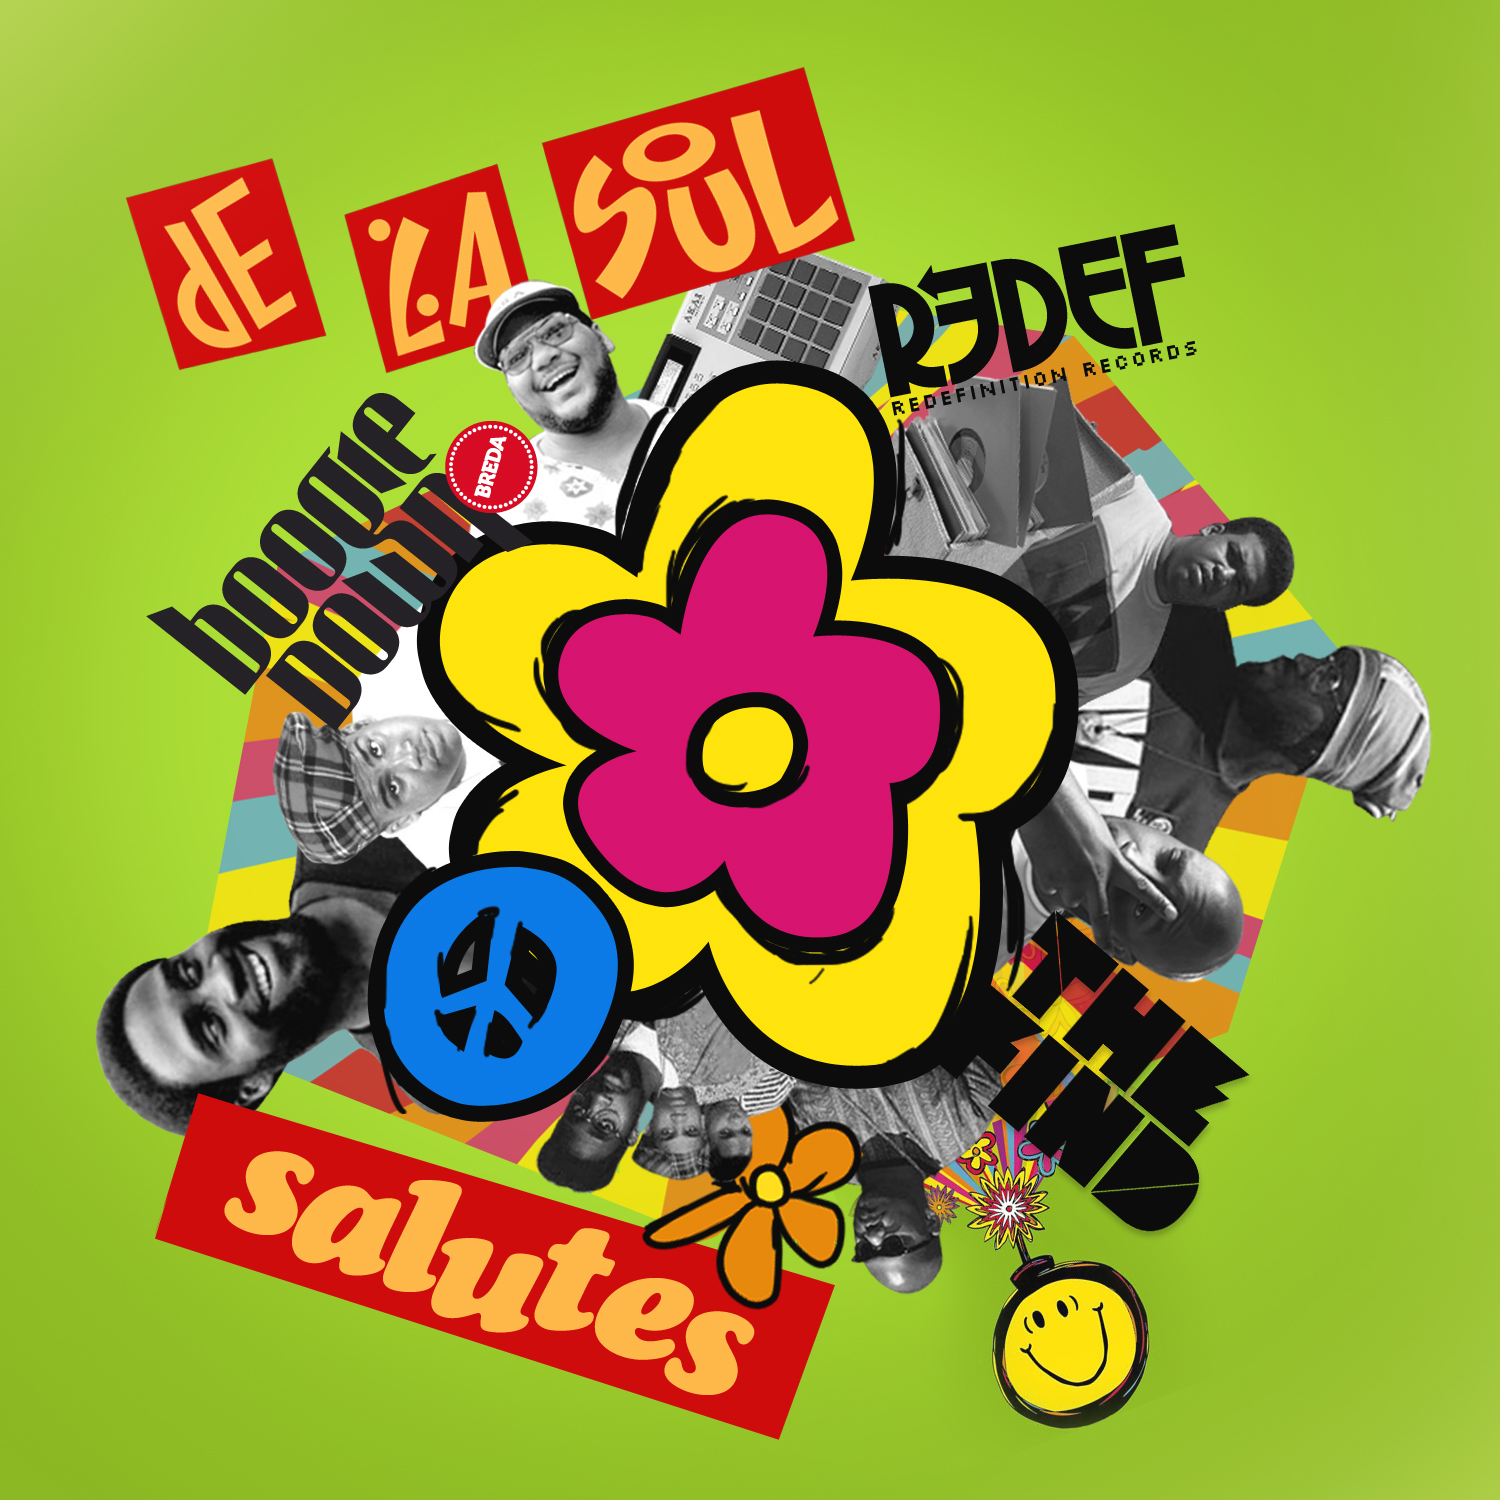 Free Download: Various Artists – De La Soul Salutes EP (2011)